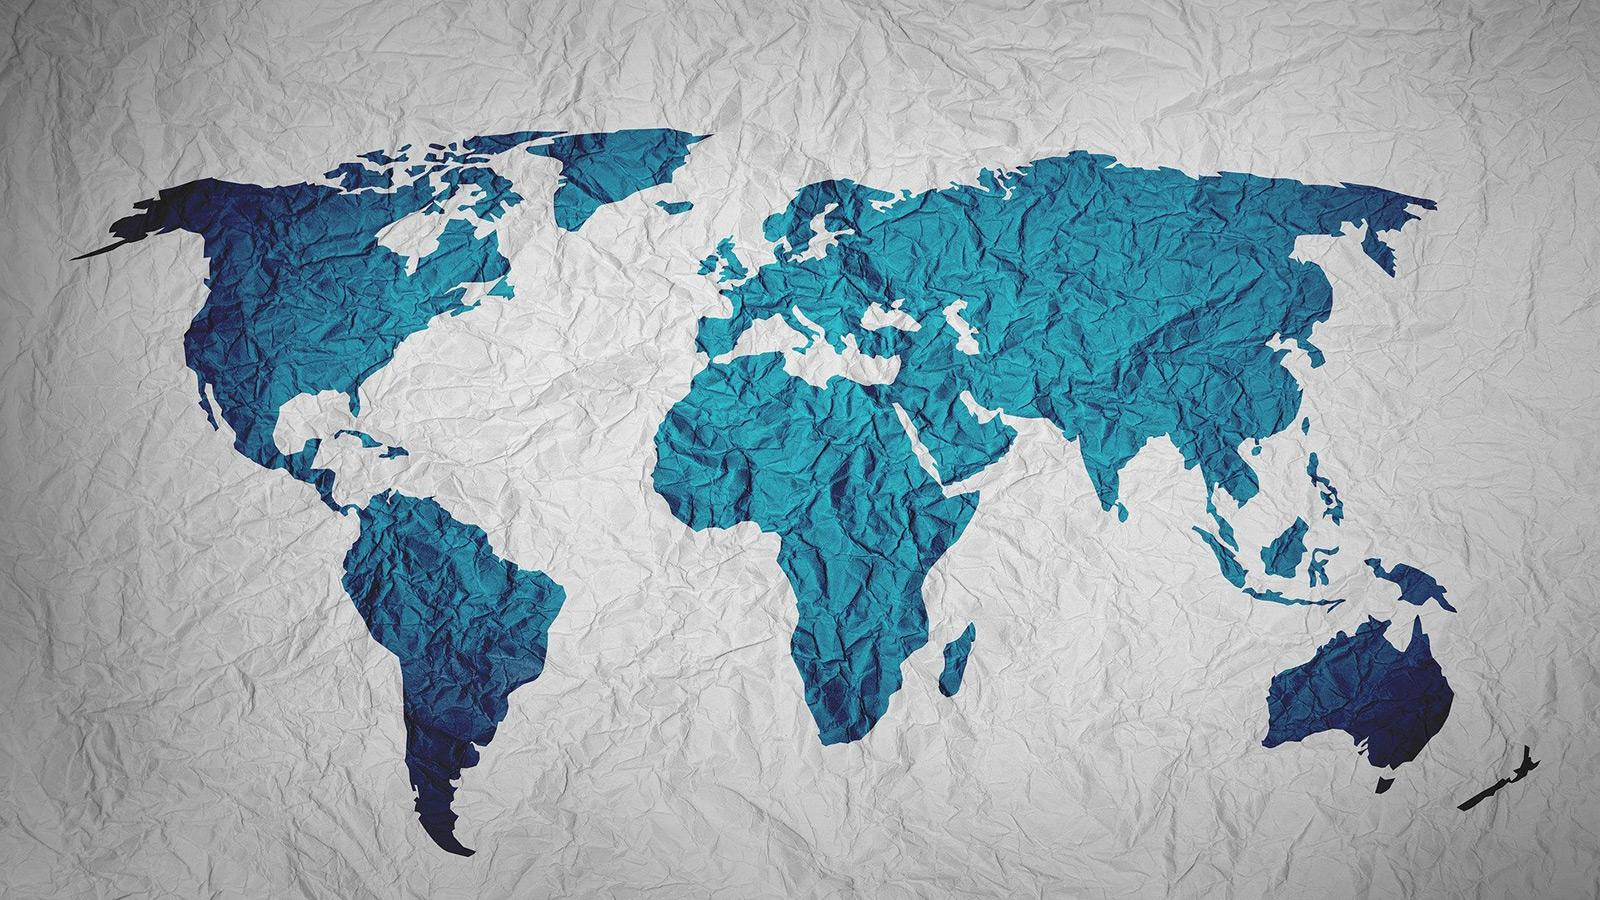 Map of the world, Image by Yuri B from Pixabay